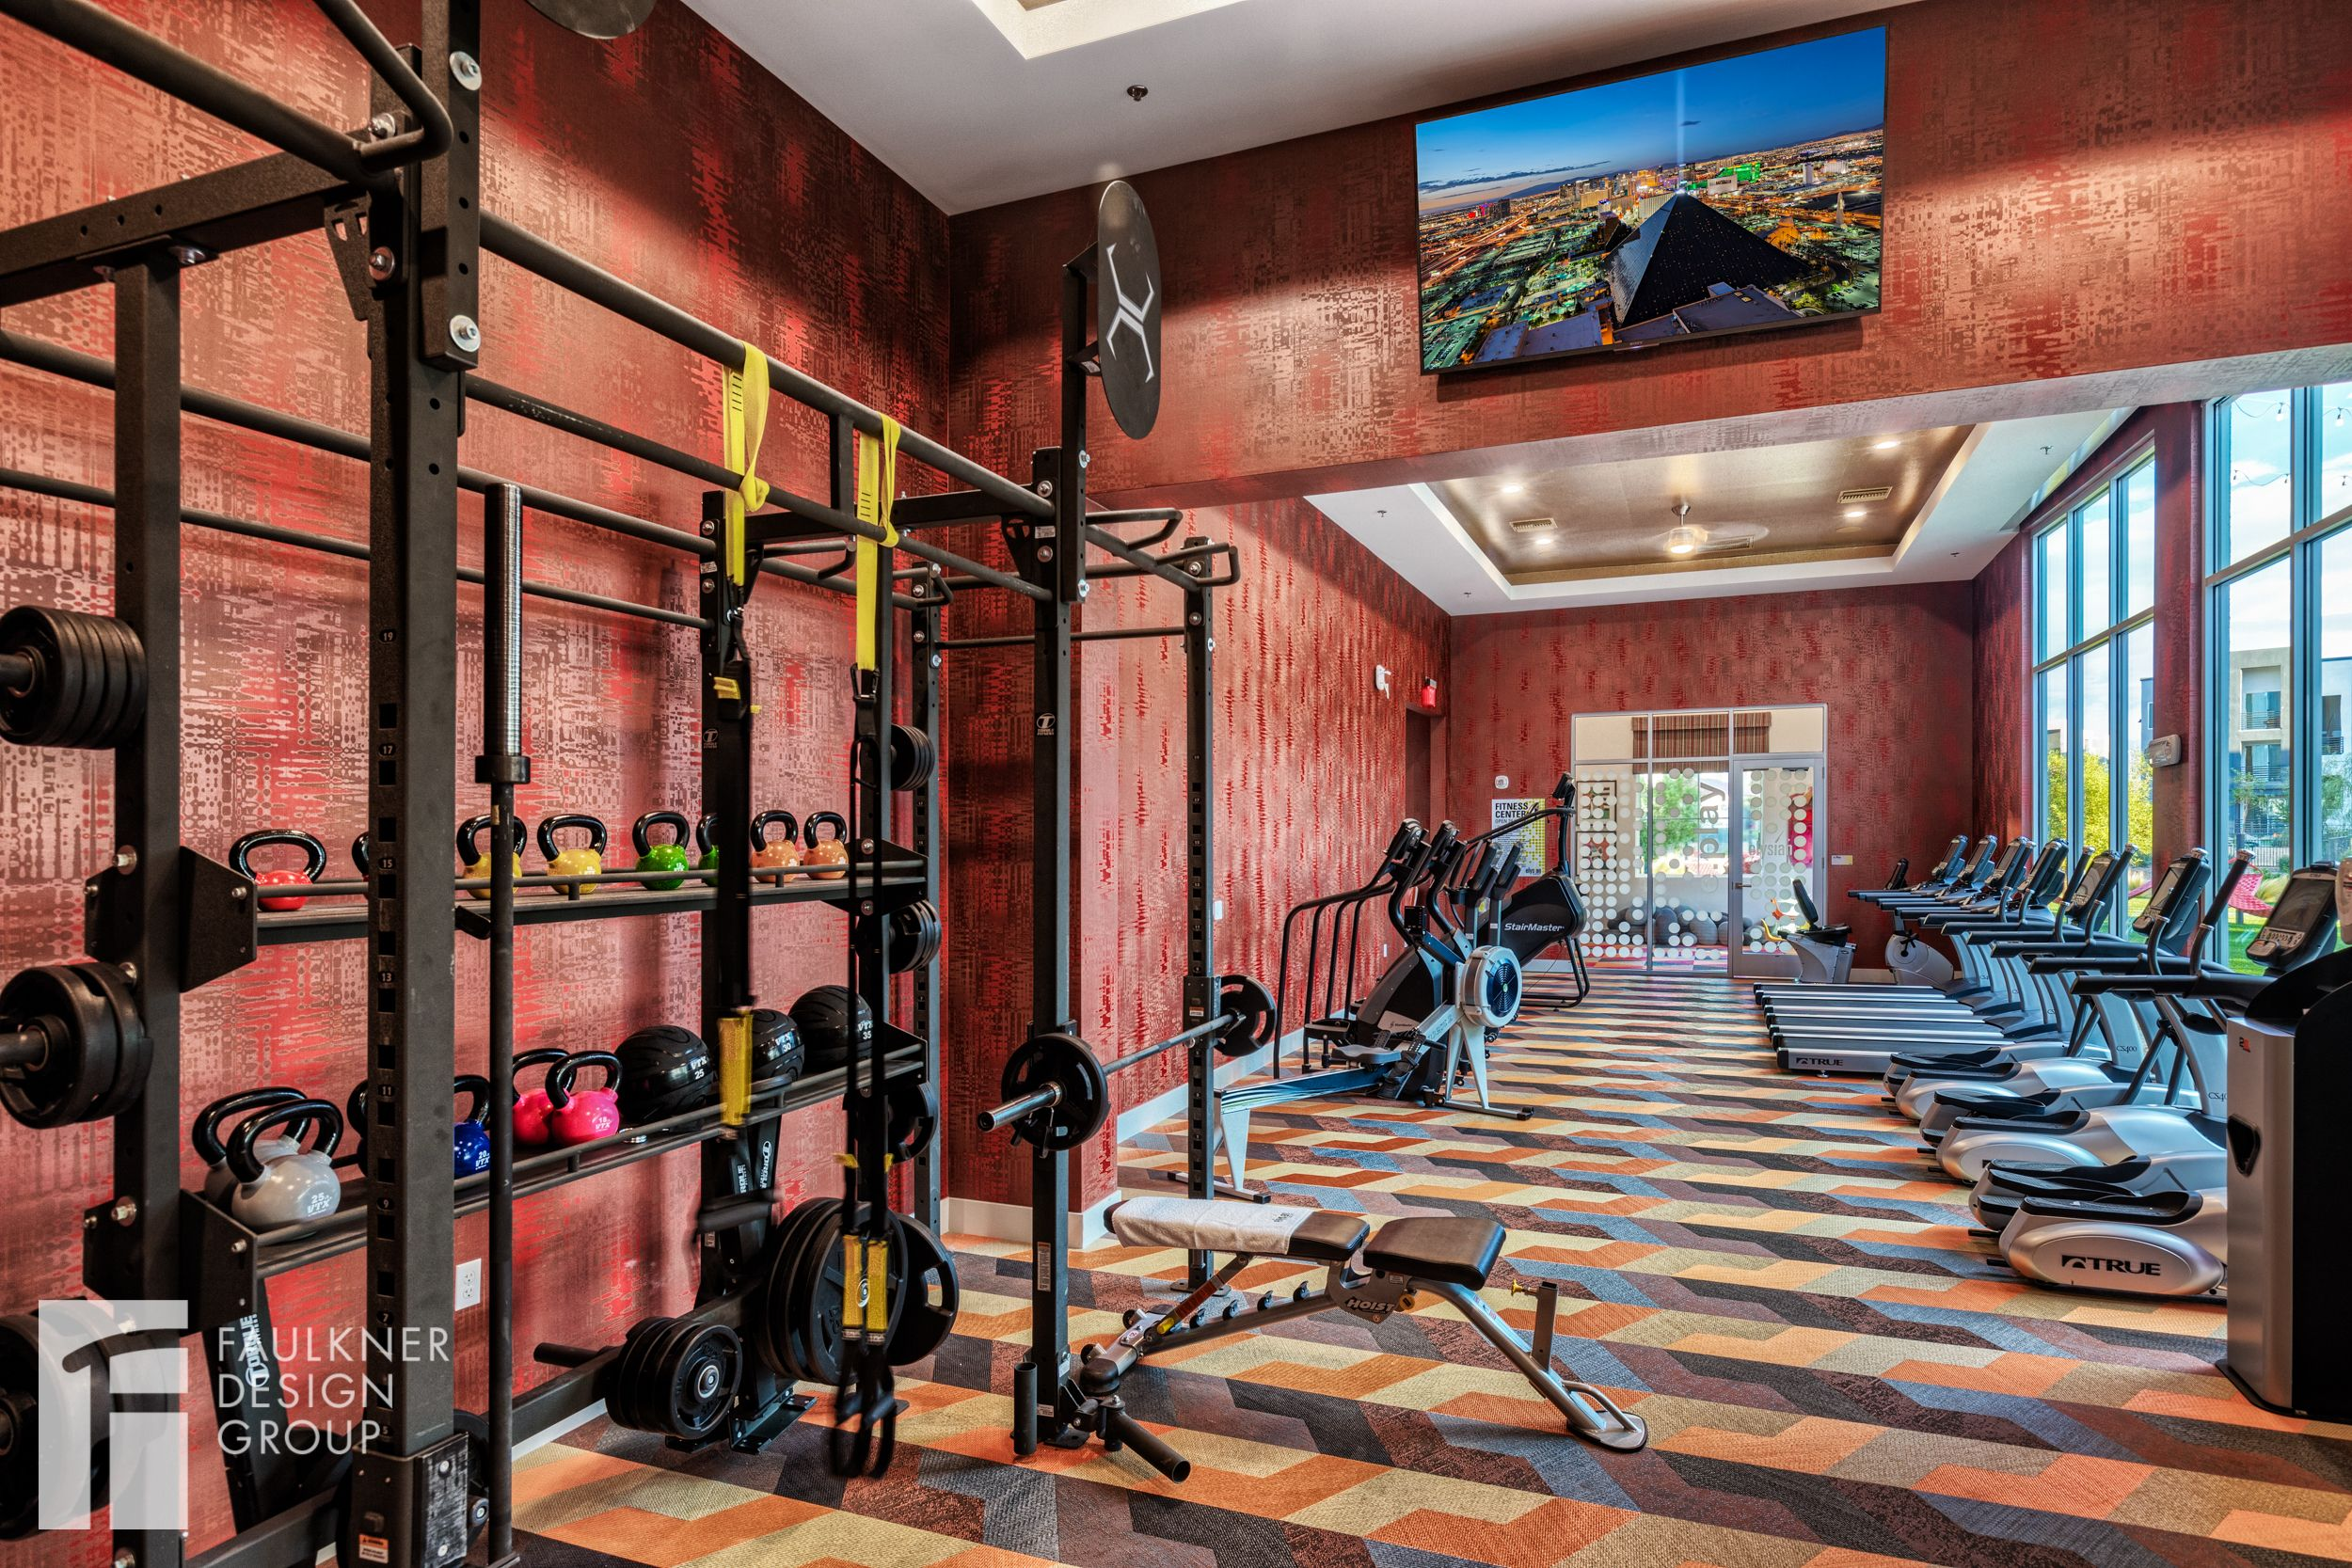 Auburn 160, an ACC property at Auburn University in Alabama, has an  expansive clubhouse with lounge spaces and a full fitness center.